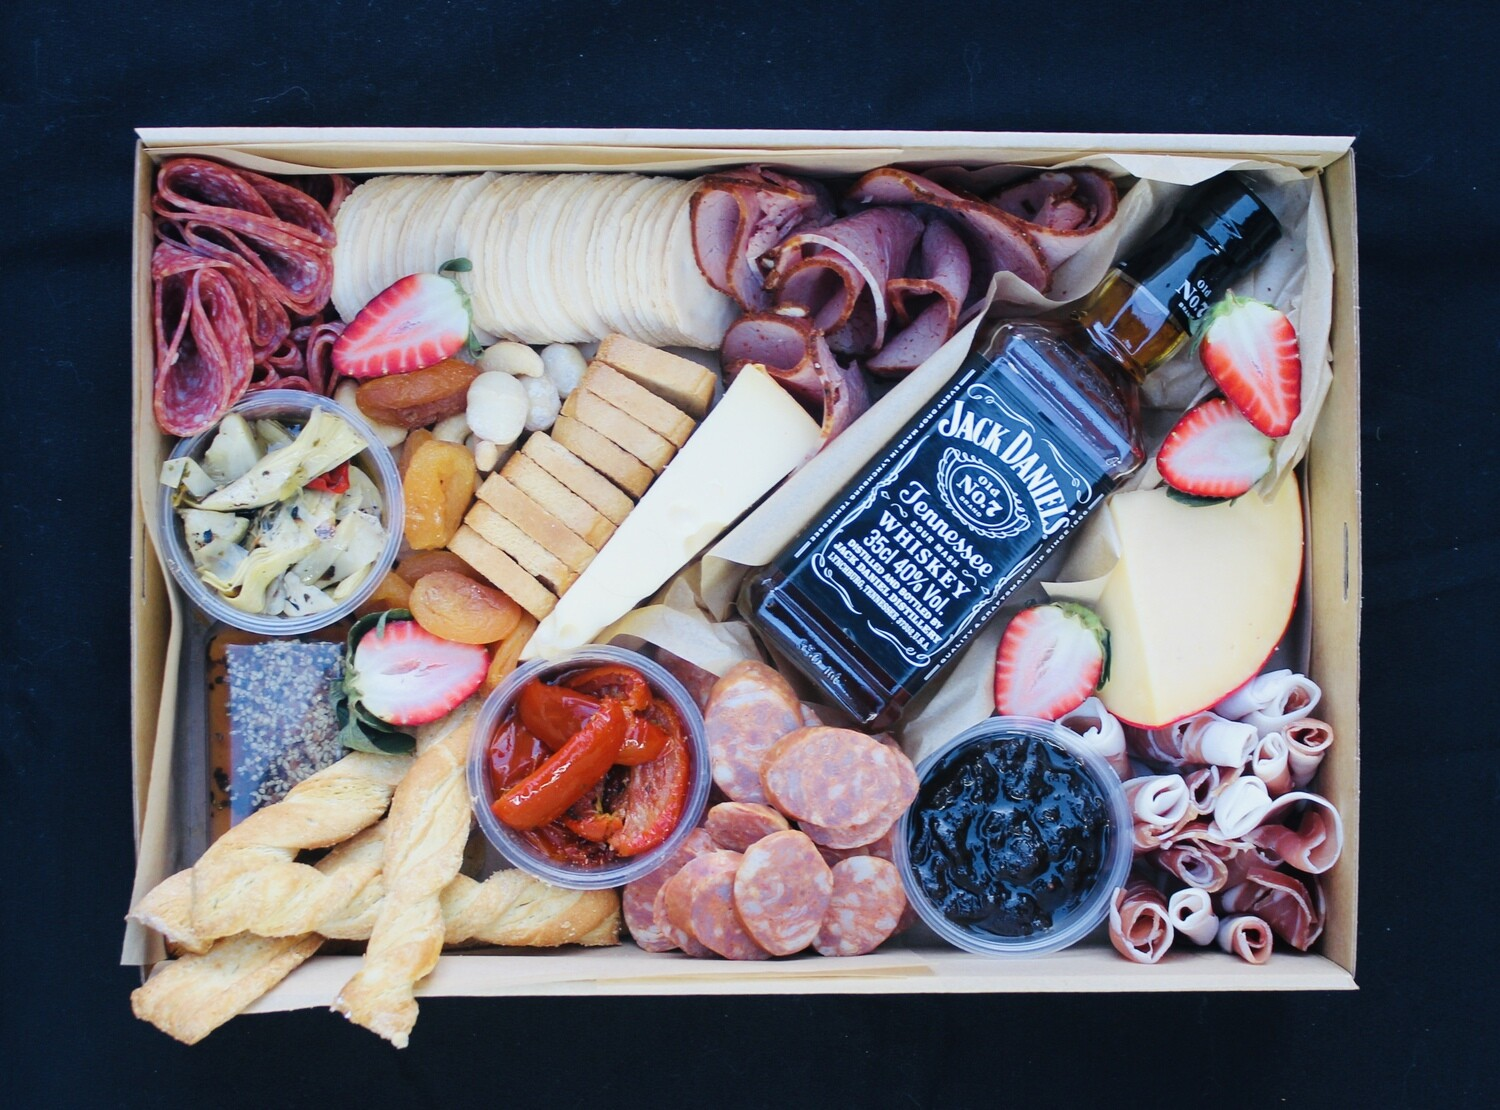 The Whisky Lover Grazing Box